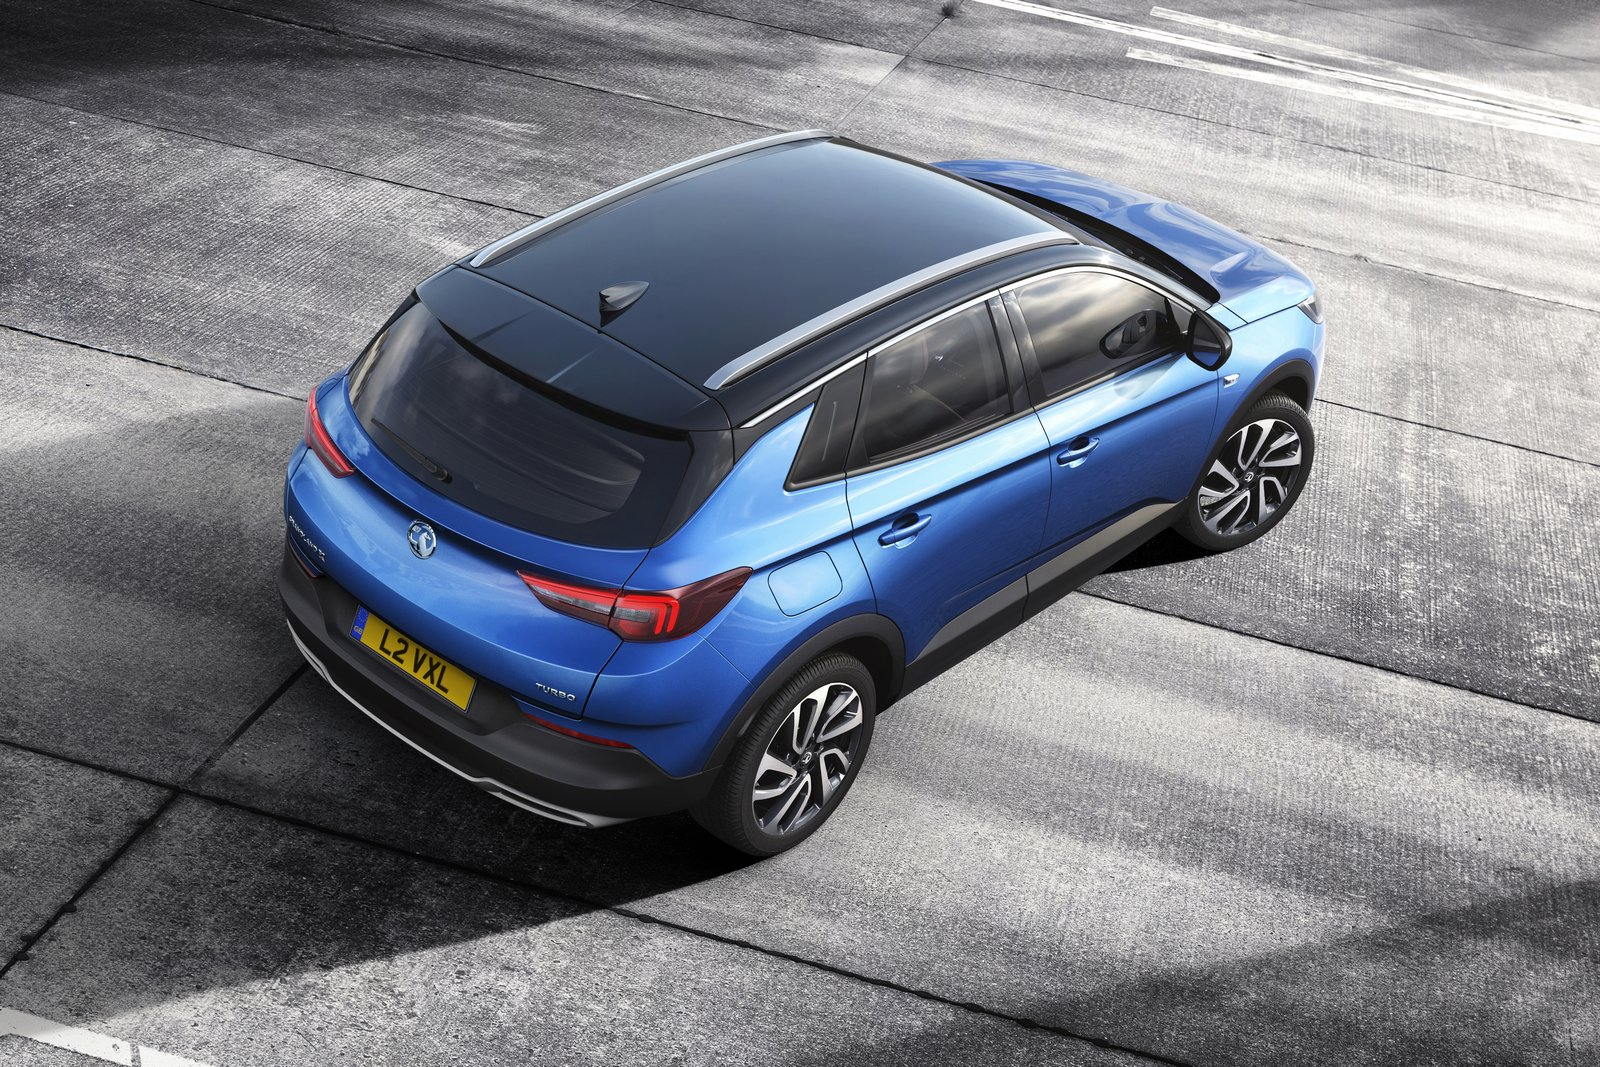 new opel vauxhall grandland x unveiled goes on sale next year. Black Bedroom Furniture Sets. Home Design Ideas